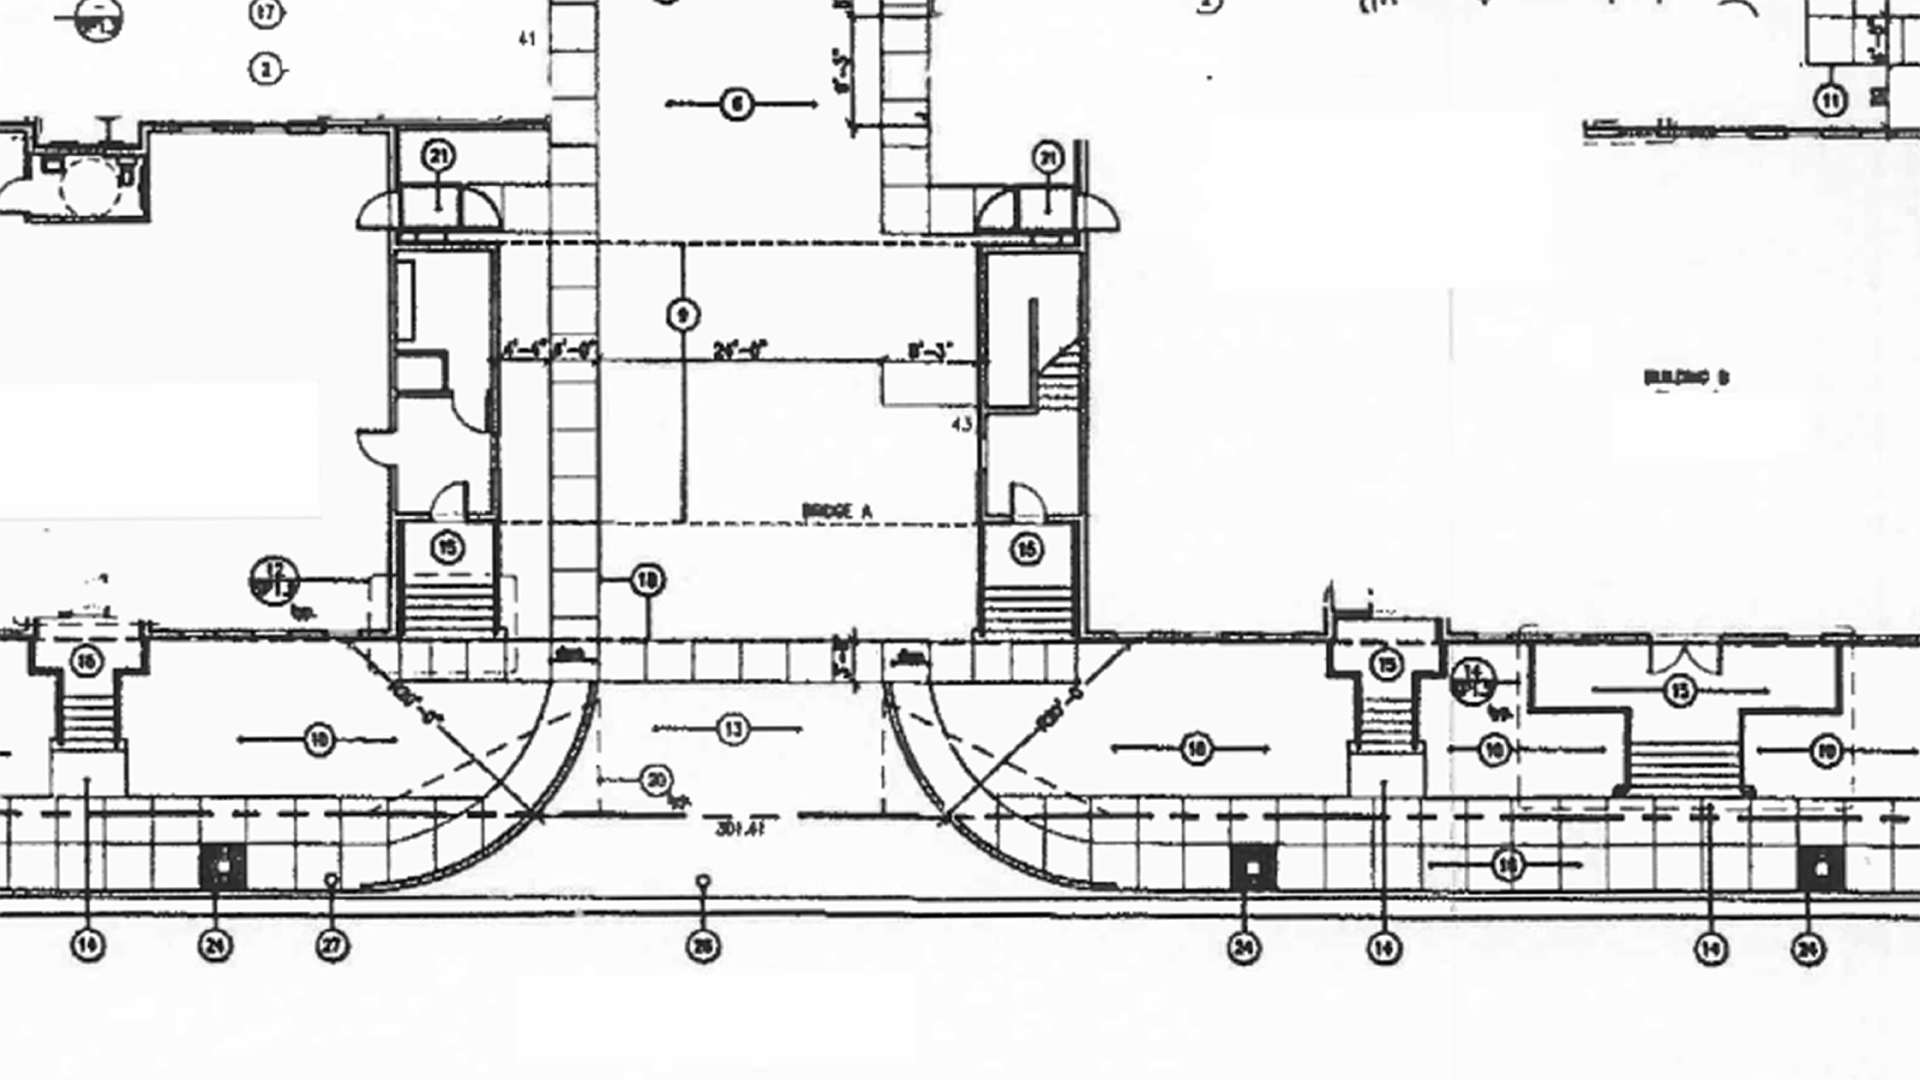 piping layout course